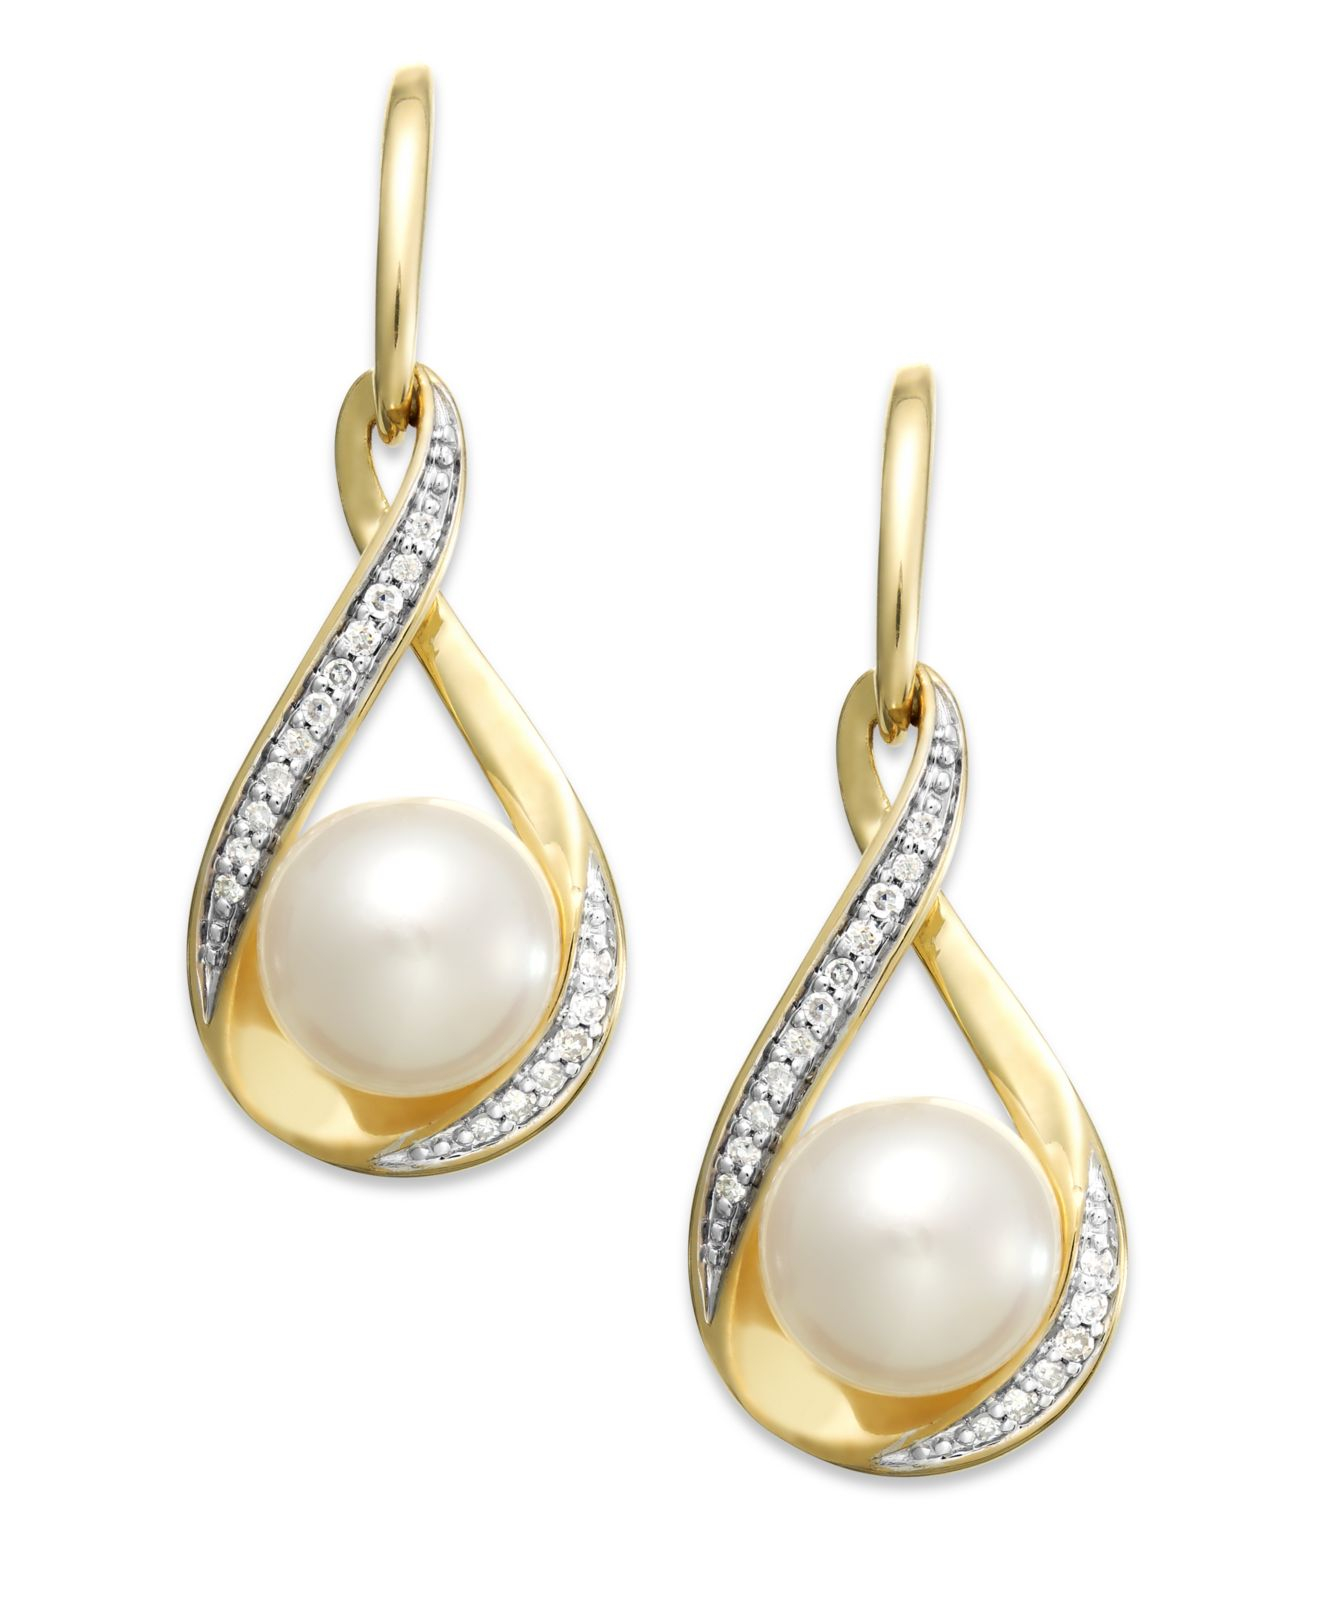 macy s pearl earrings macy s cultured freshwater pearl 7mm and 1 10 8100